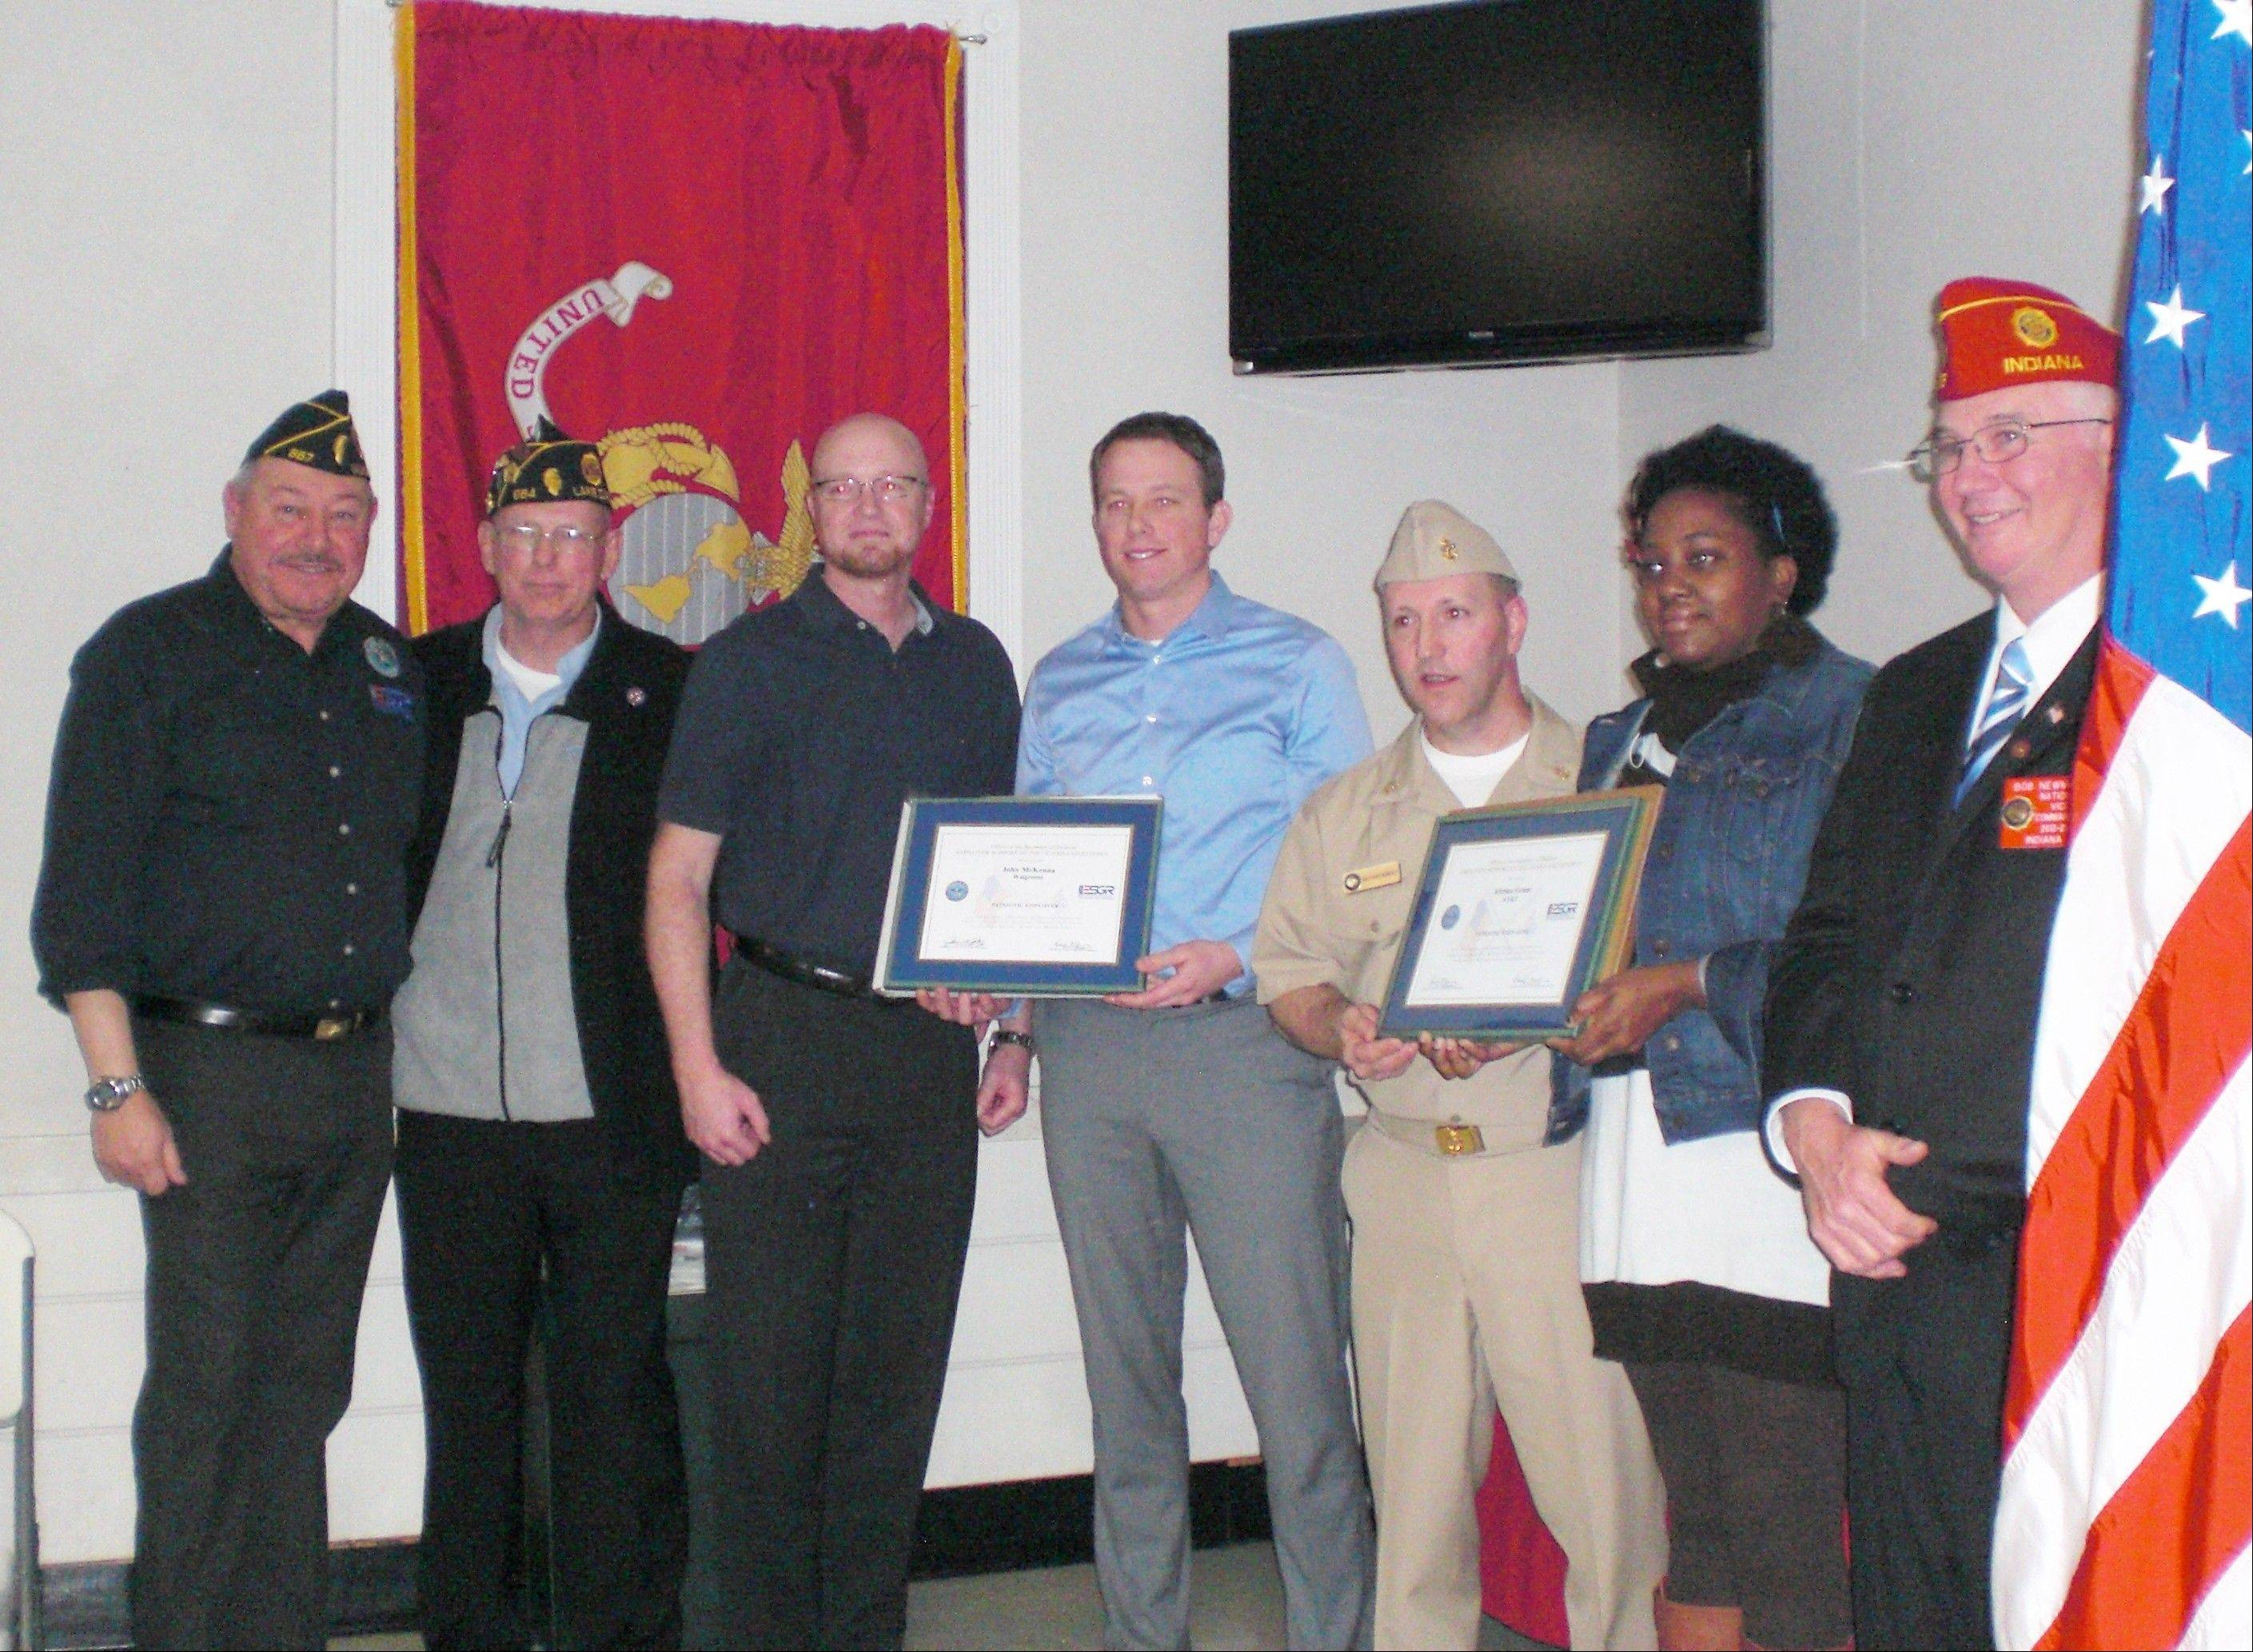 Members of Employer Support of the Guard and Reserve, from left, Stan Villarreal, Mike Peck, Kevin Guyot, John McKenna, Toni Roberti, Shalantha Keys and Robert Newman at the recent American Legion Post 964 meeting.